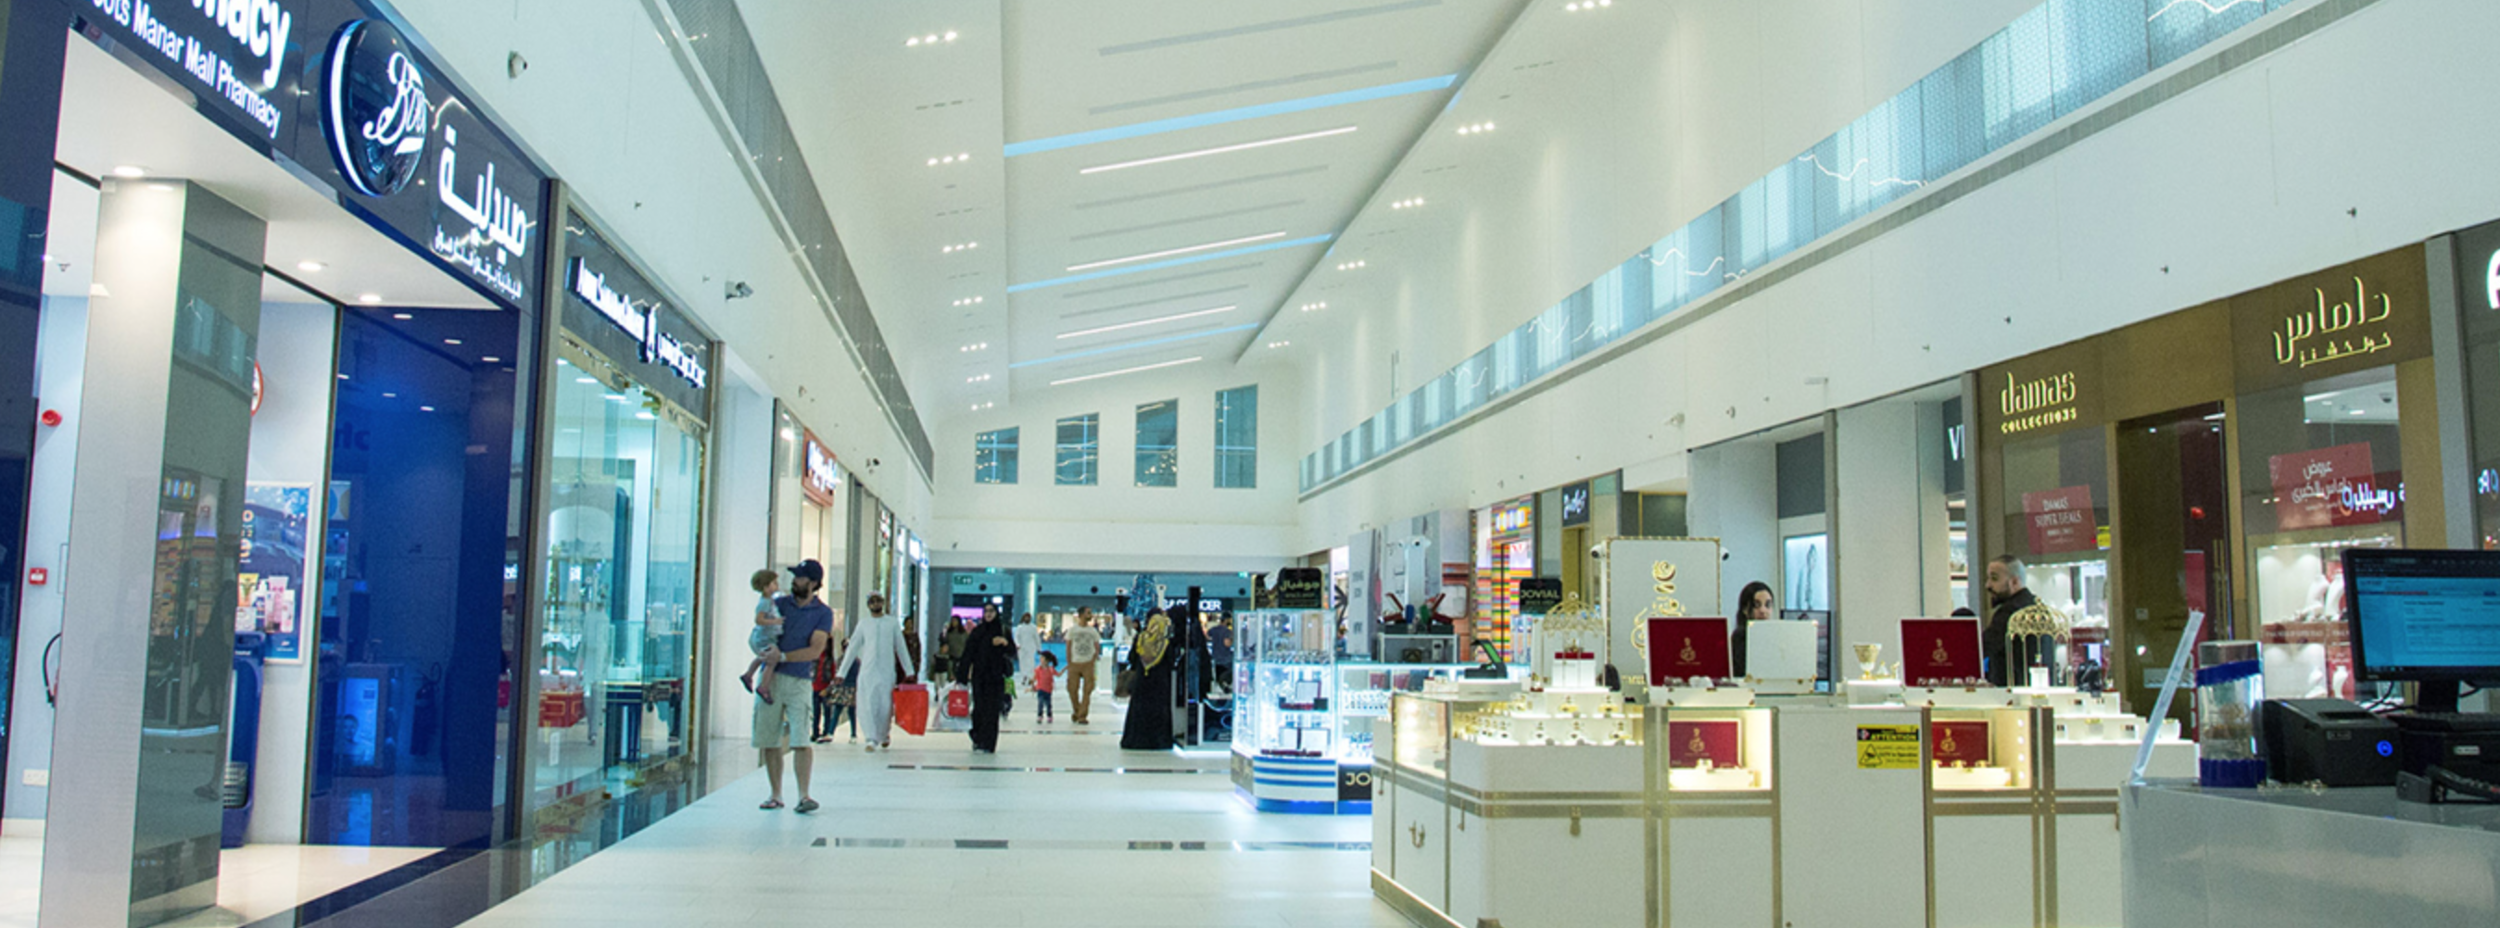 Manar Mall Renovated Interior by Cadiz.png